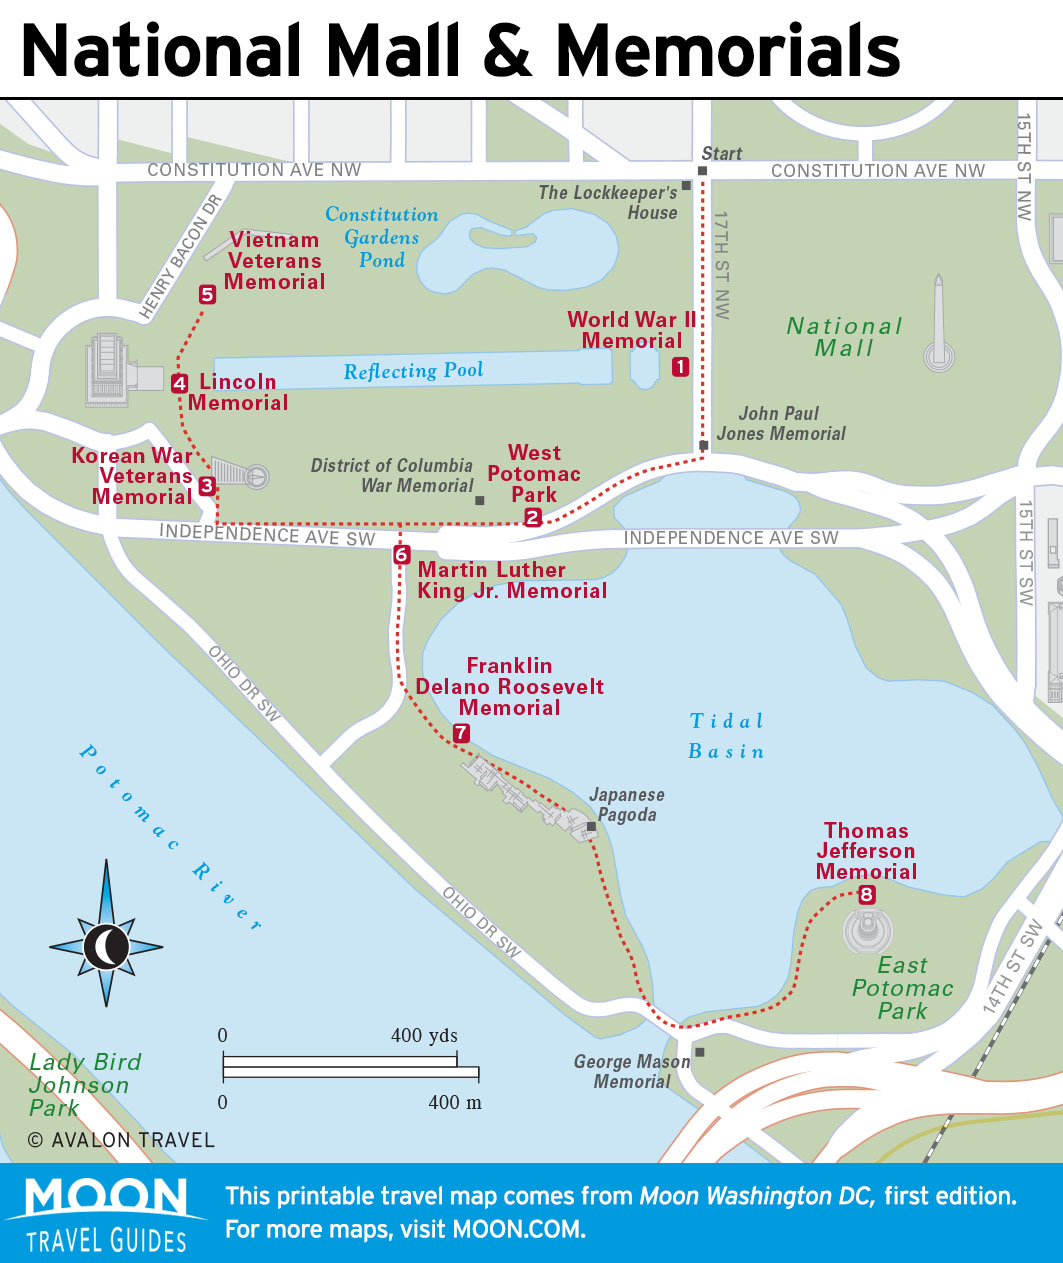 Walking DC: The National Mall & Memorials | Moon Travel Guides on